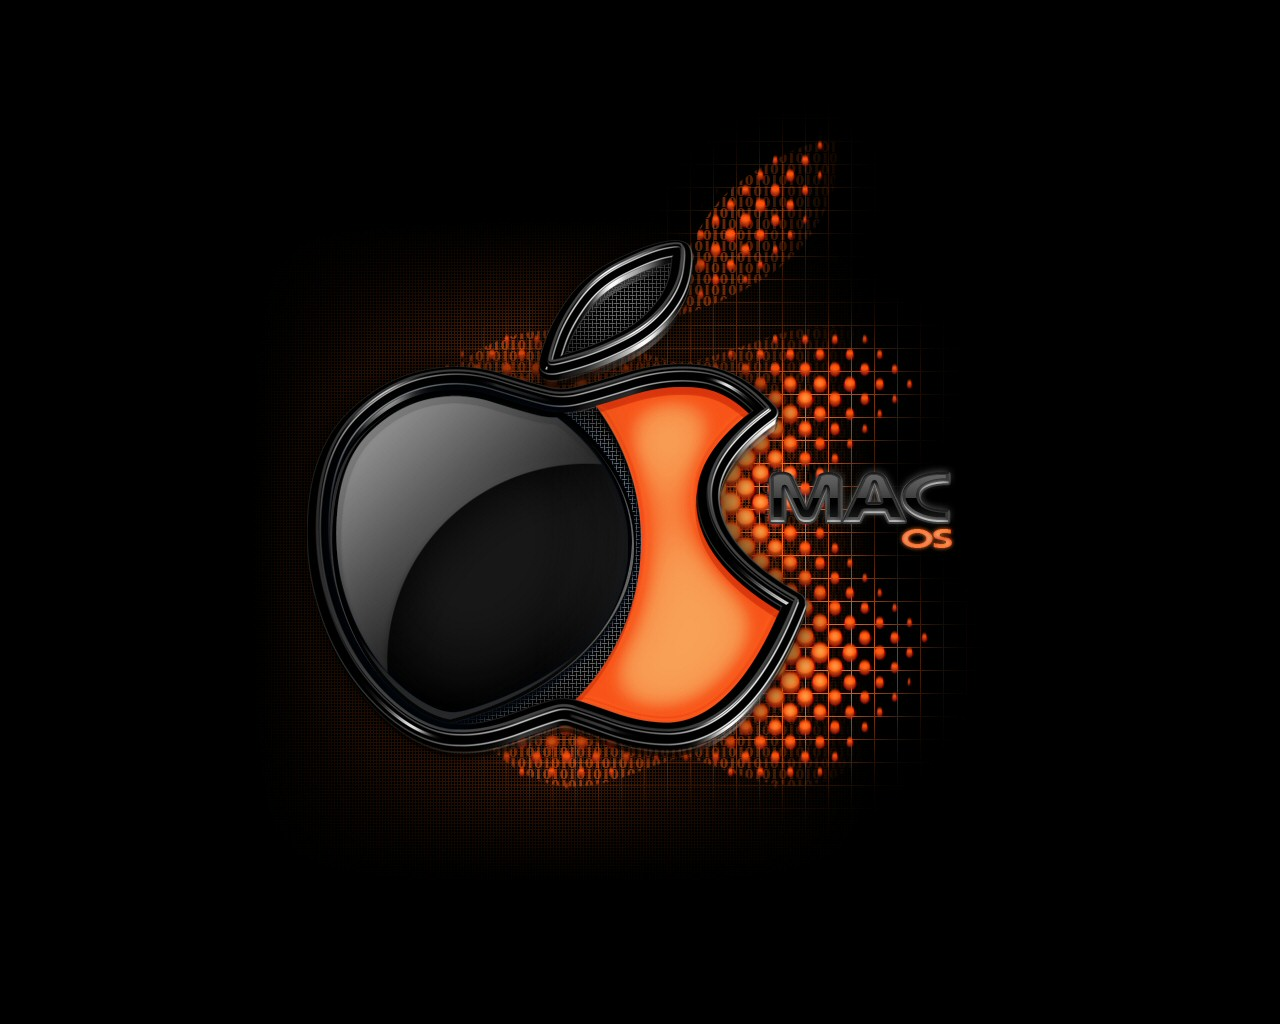 apple wallpaper for xp apple wallpaper for xp apple wallpaper high 1280x1024